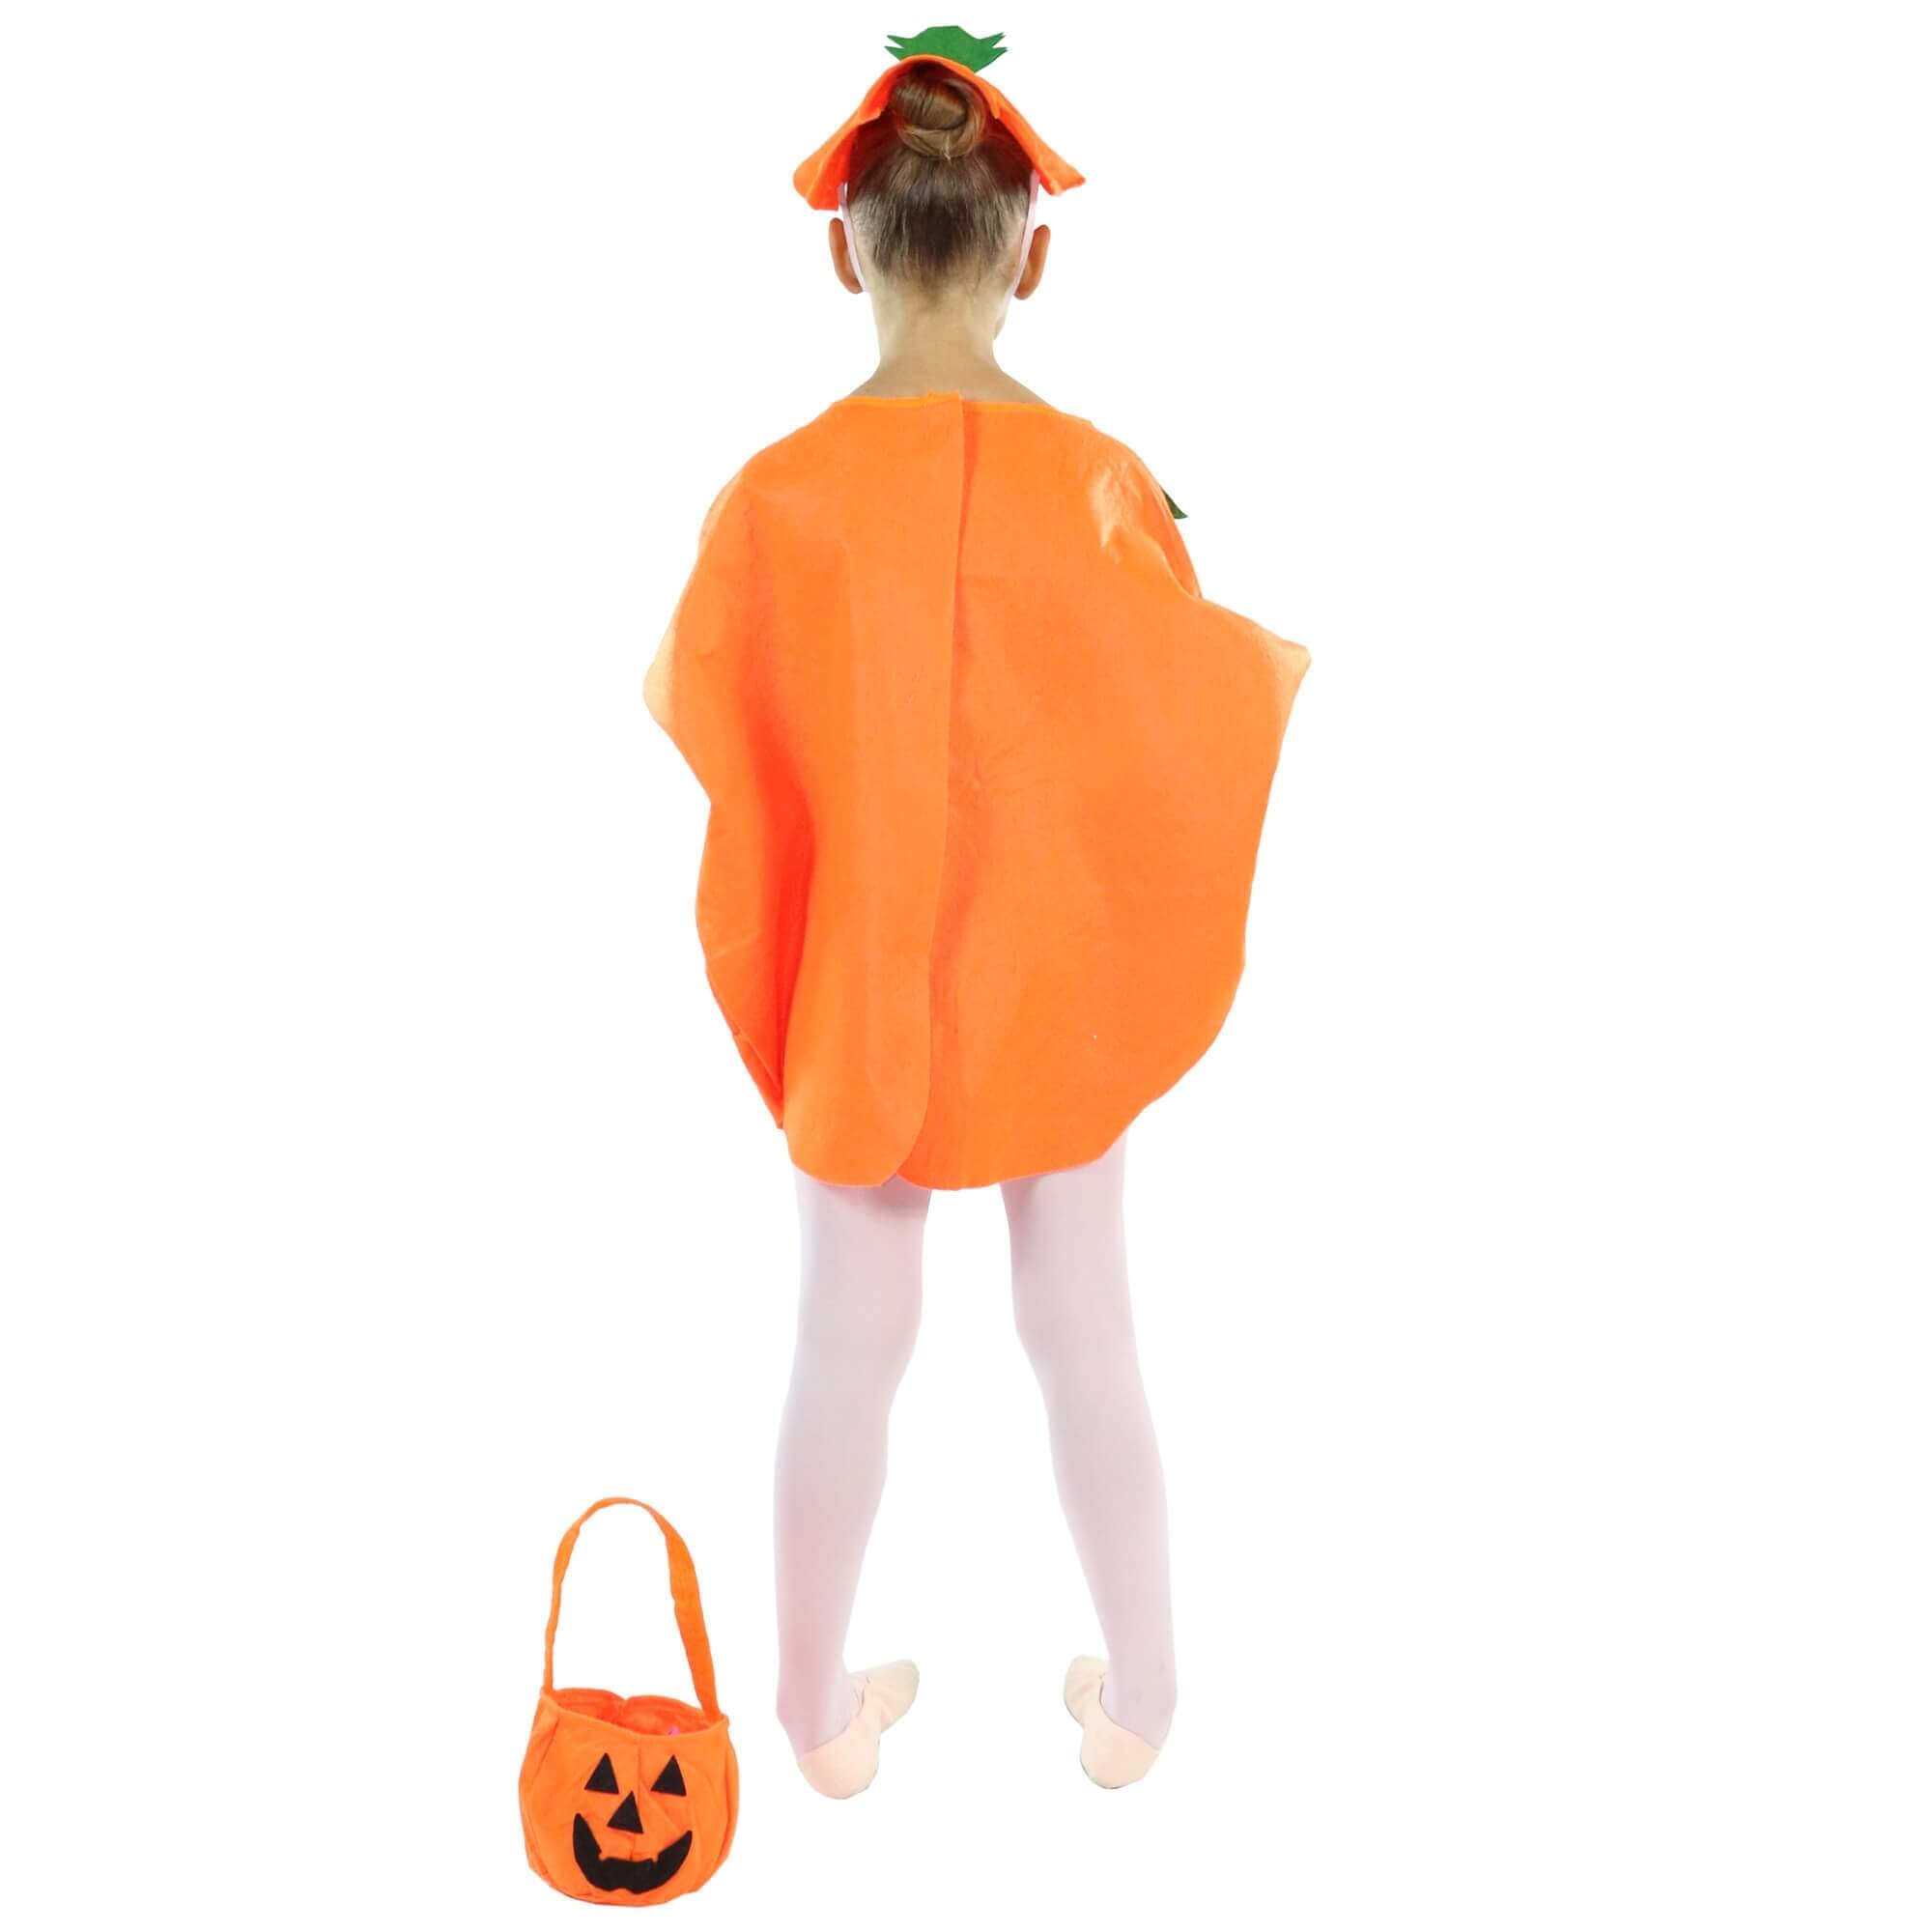 Danzcue Child Halloween Pumpkin Costume Suit with Hat and Pumpkin Bag - Click Image to Close